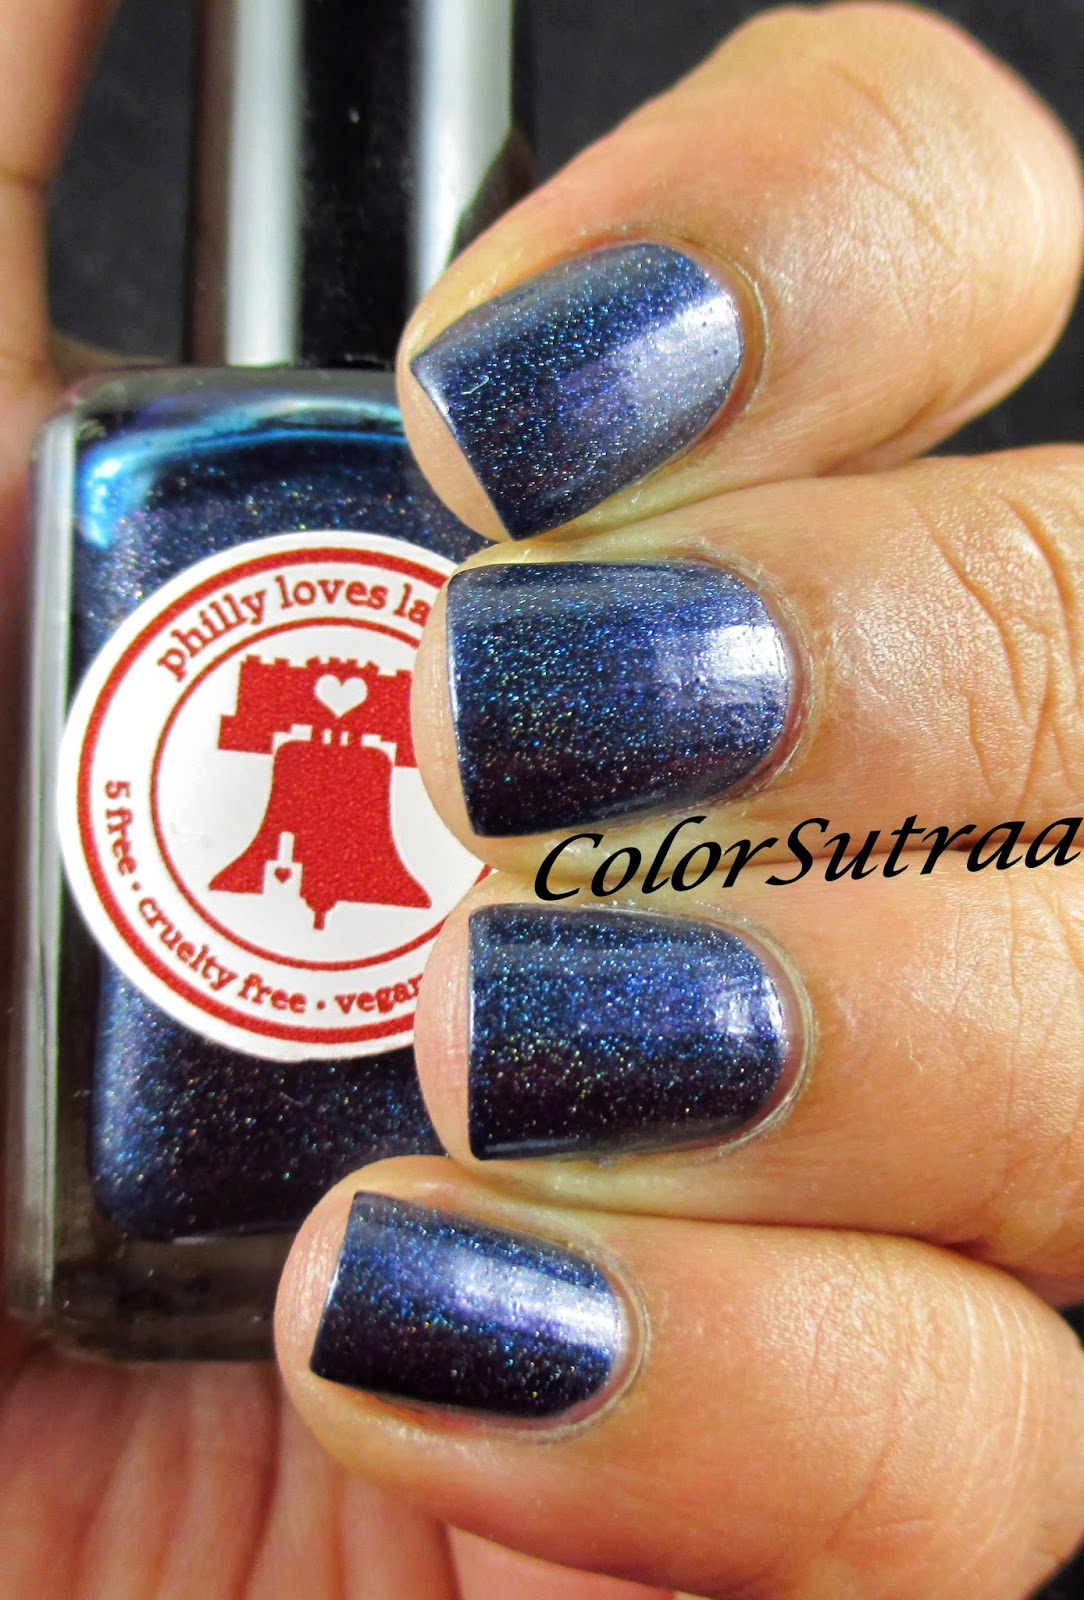 PHILLY LOVES LACQUER my picks : Swatches and Review - ColorSutraa